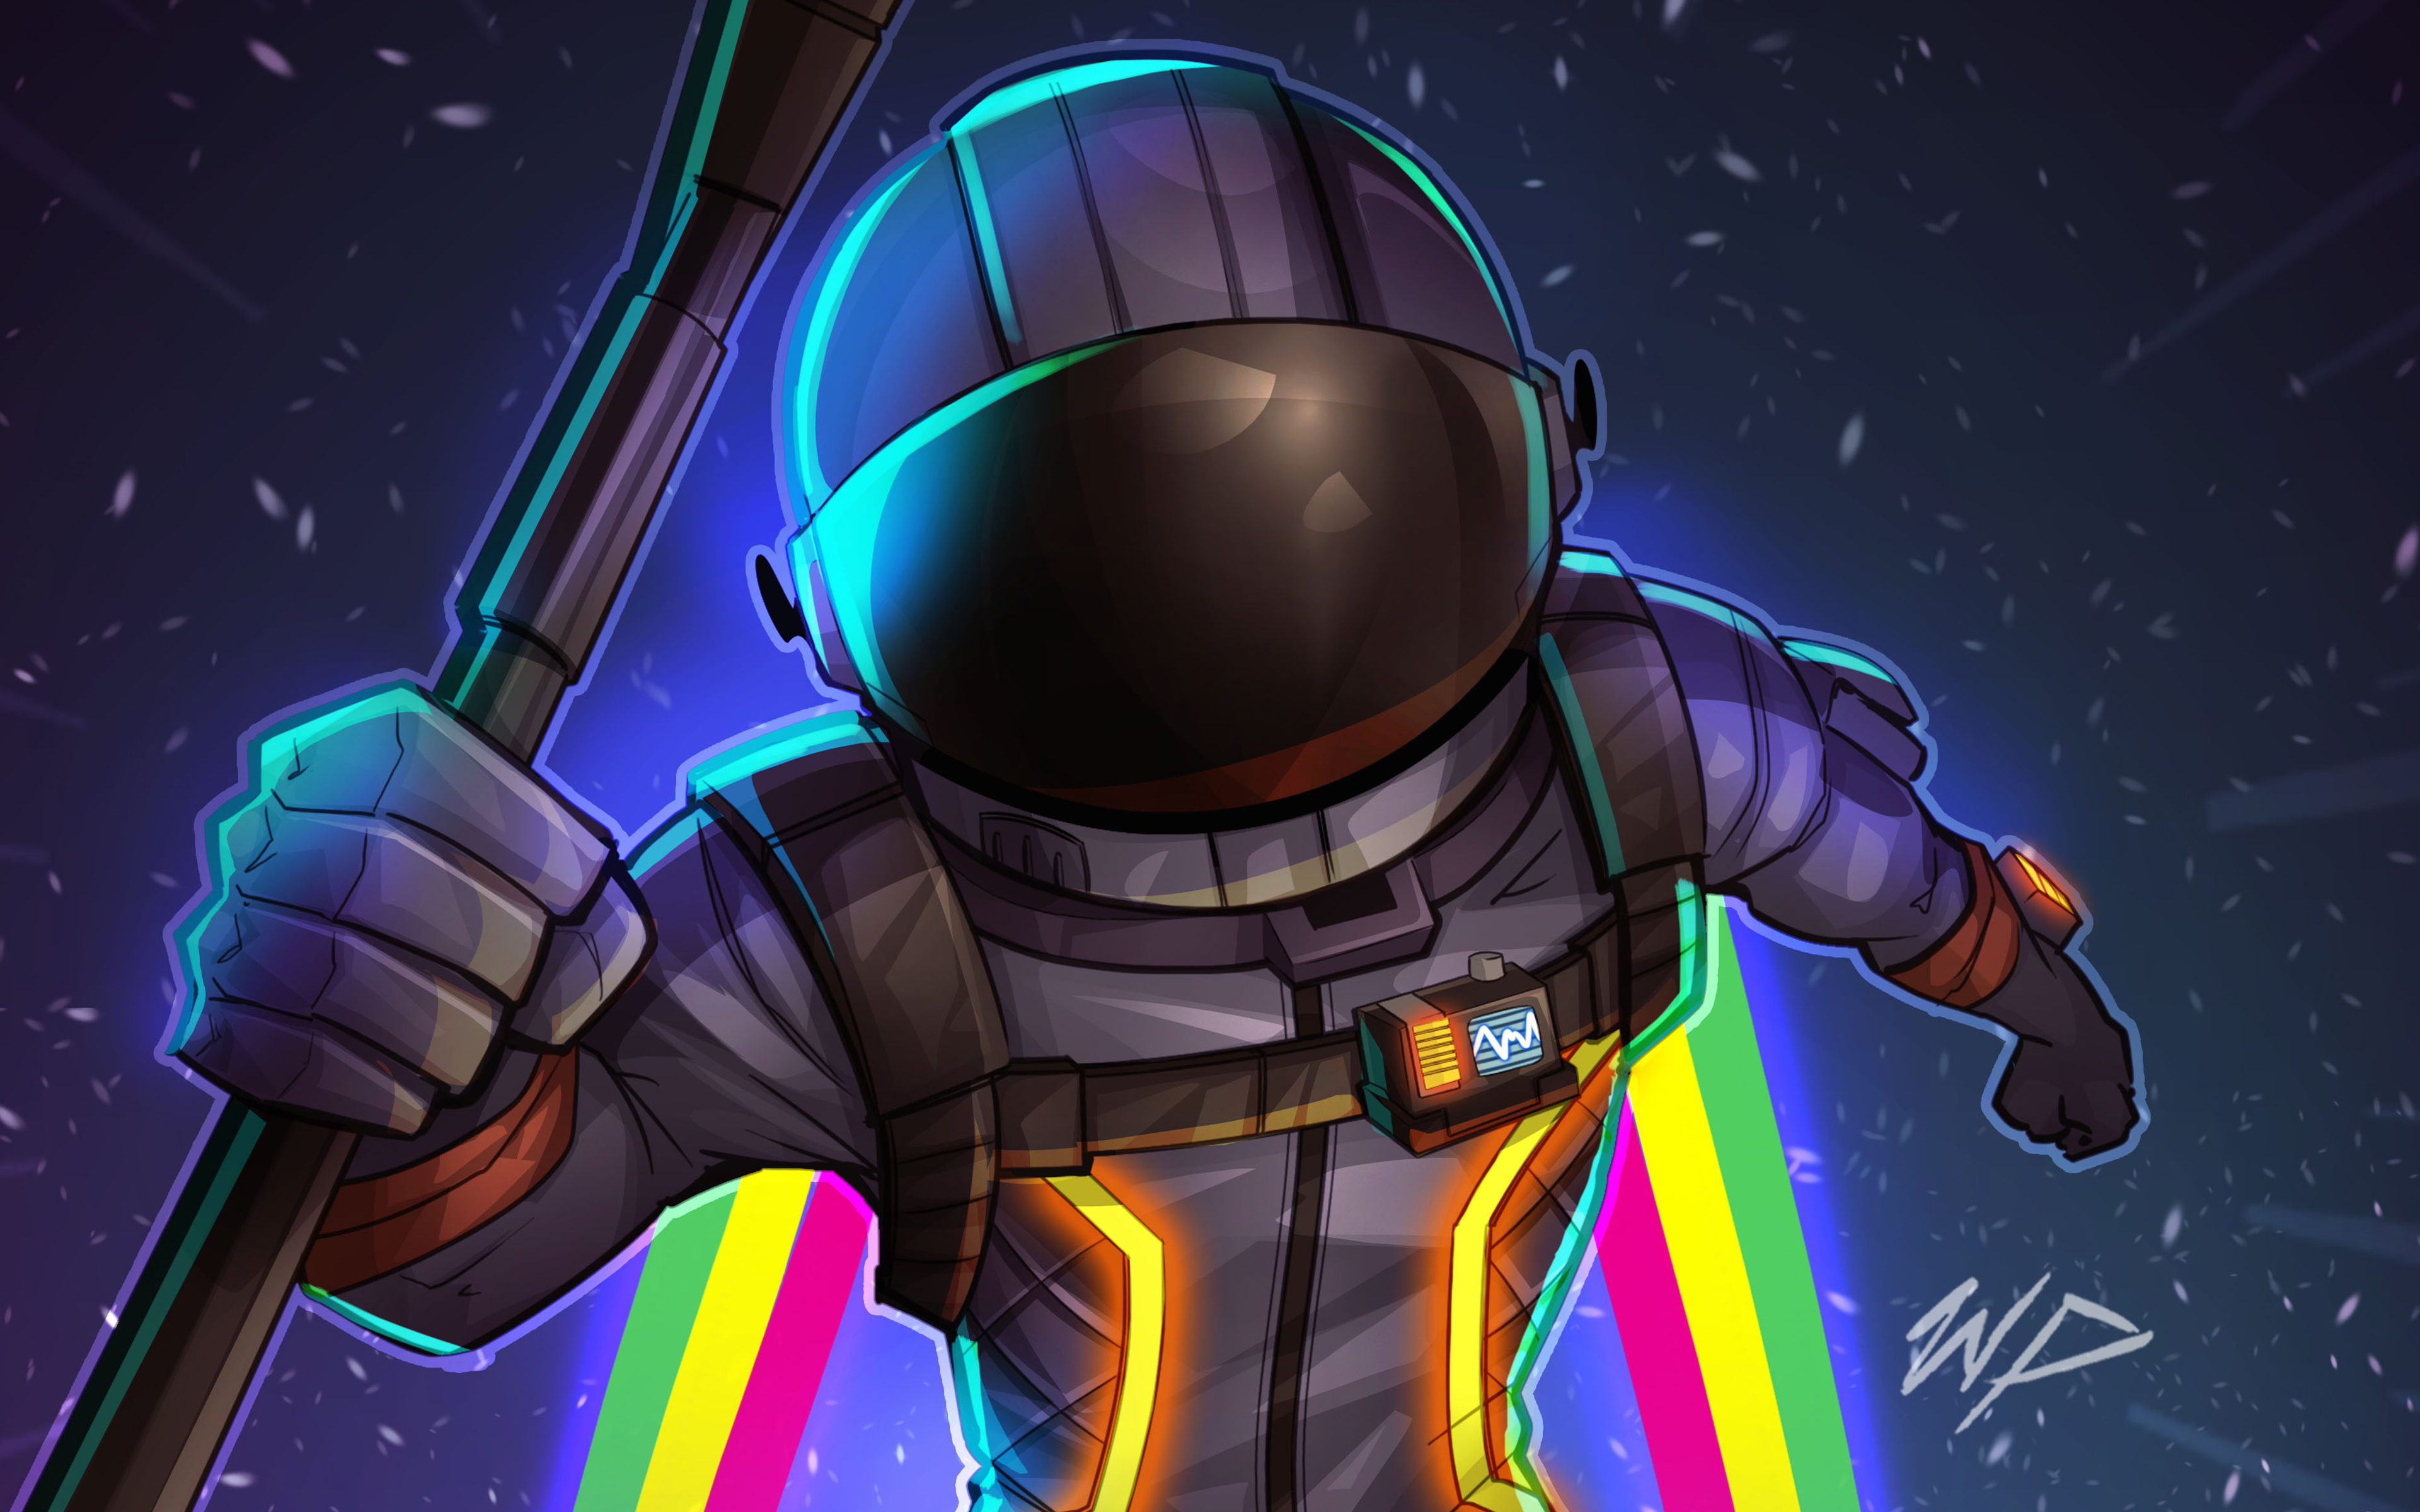 Ultra Hd Wallpapers Iphone X Fortnite Dark Voyager 4k Wallpapers Hd Wallpapers